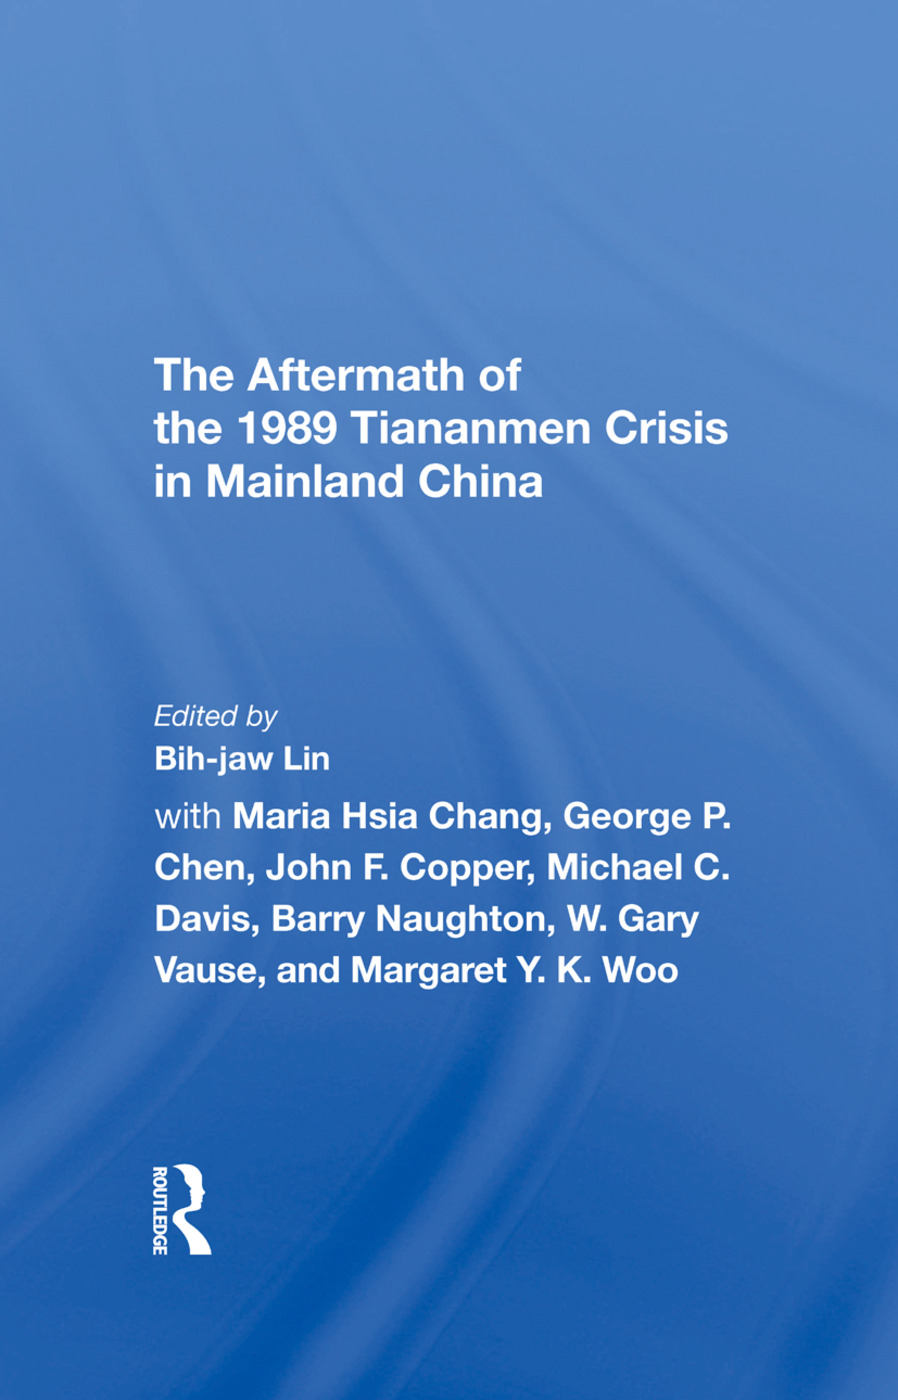 The Aftermath Of The 1989 Tiananmen Crisis For Mainland China book cover